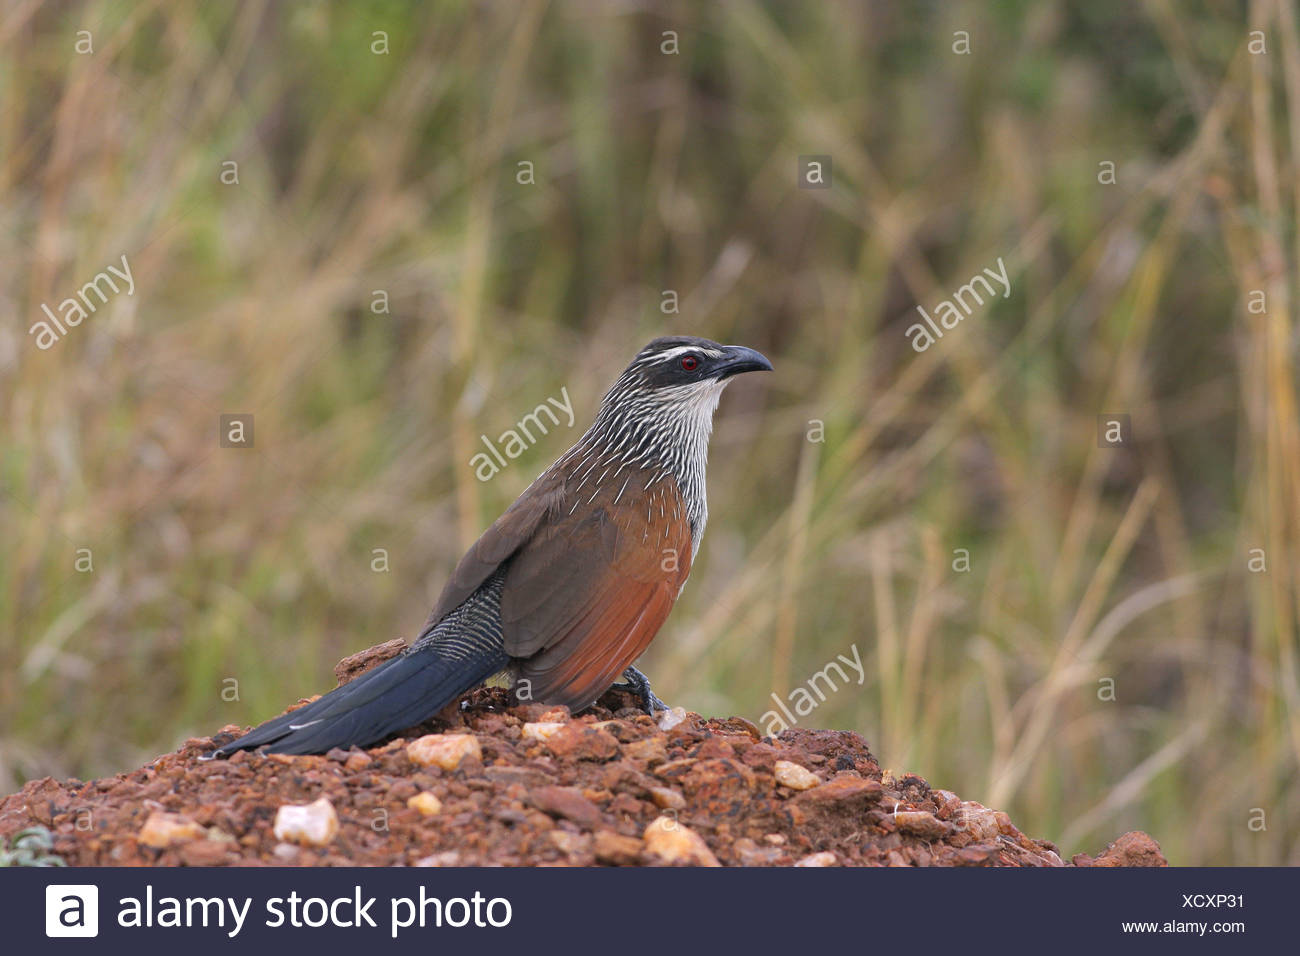 White-browed Coucal (Centropus supercillosus) adult, standing on soil mound, Masai Mara, Kenya - Stock Image